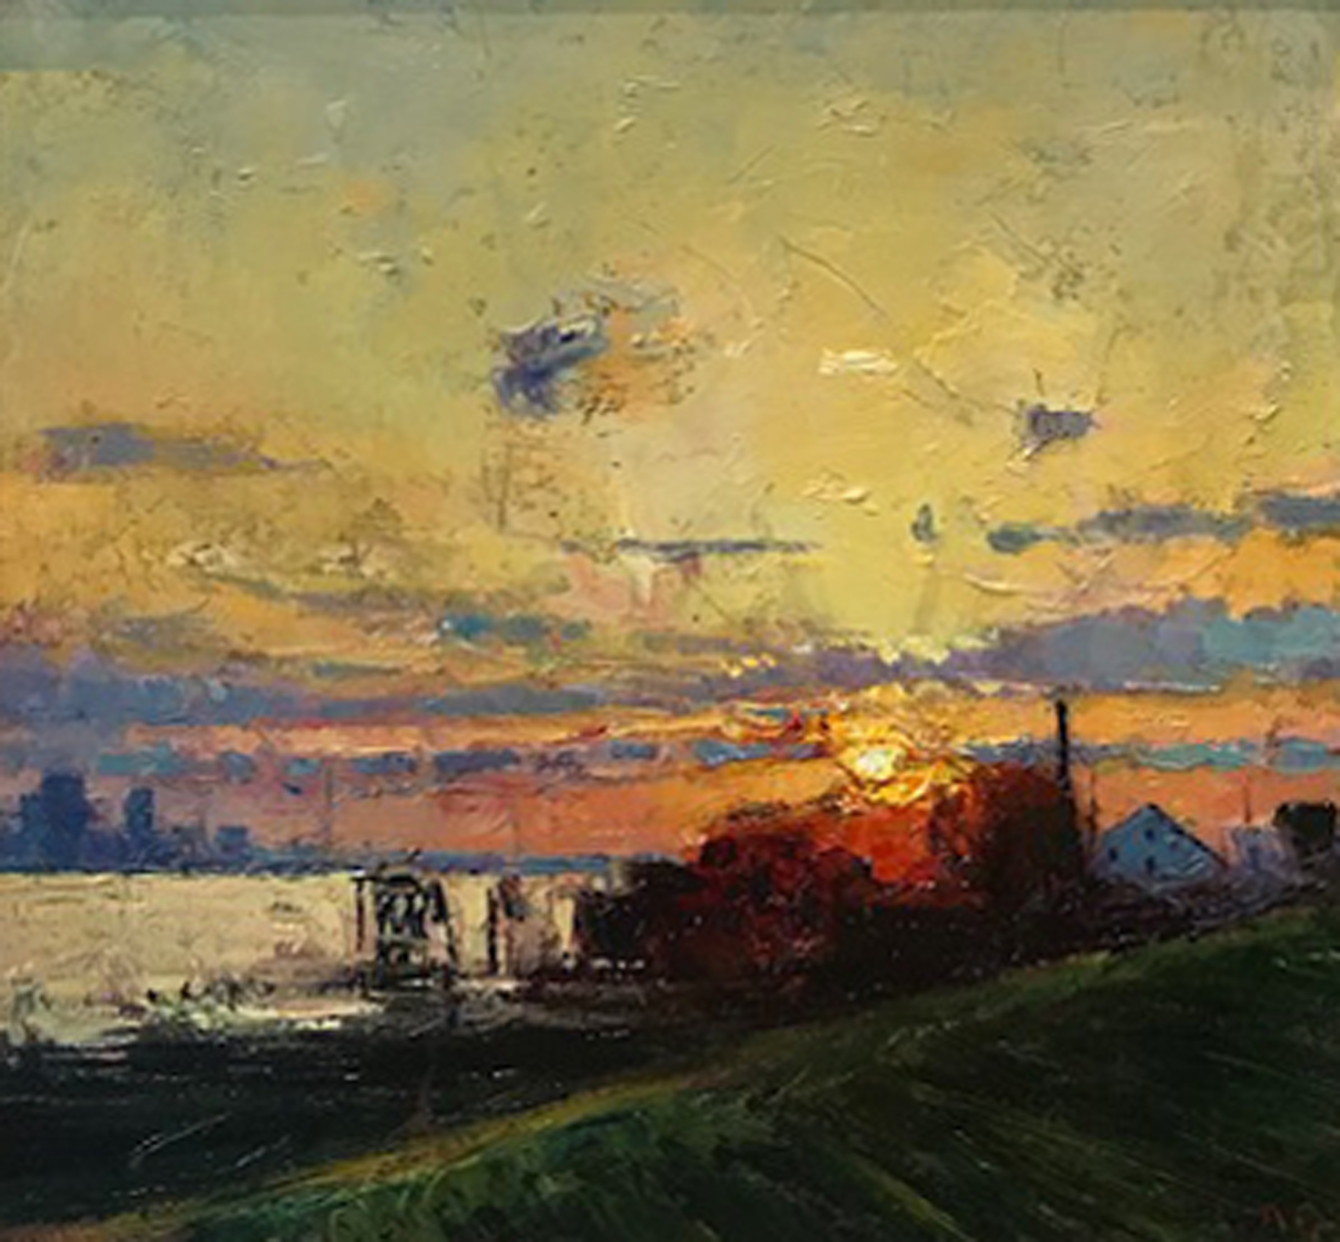 Artist: Andrew Gifford  Title: New Orleans From The Levee, Sunset  Size: 26 x 26.5 cm  Medium: Oil on panel  Price: £6800